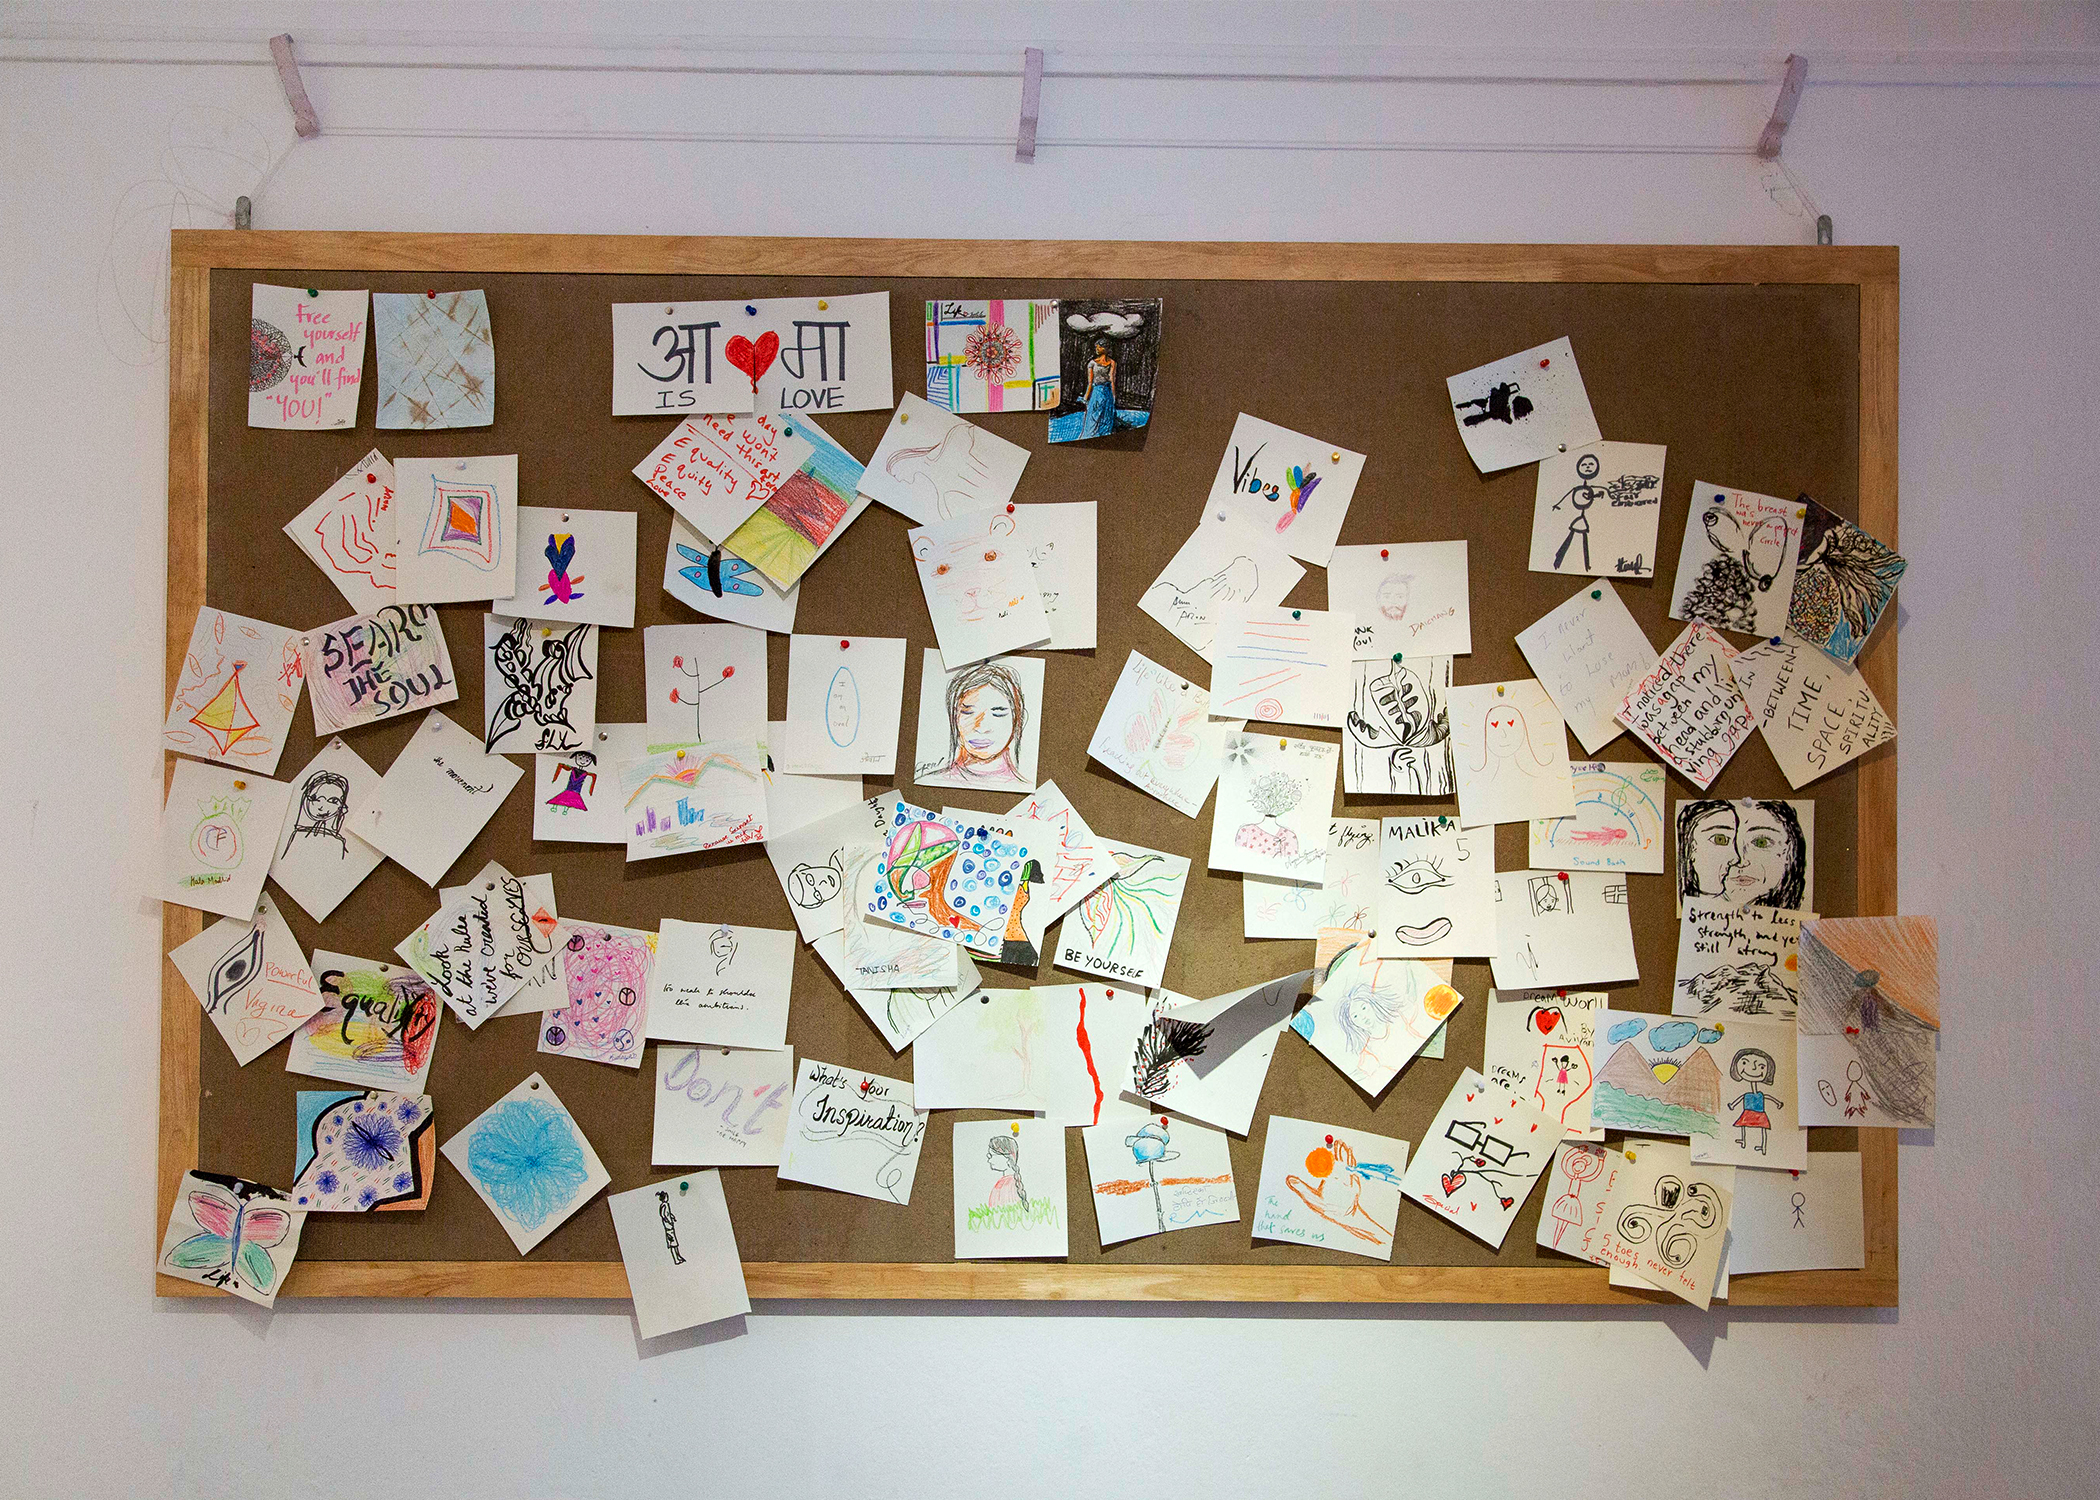 Self-portraits made by visitors to the gallery that accumulated throughout the exhibition.